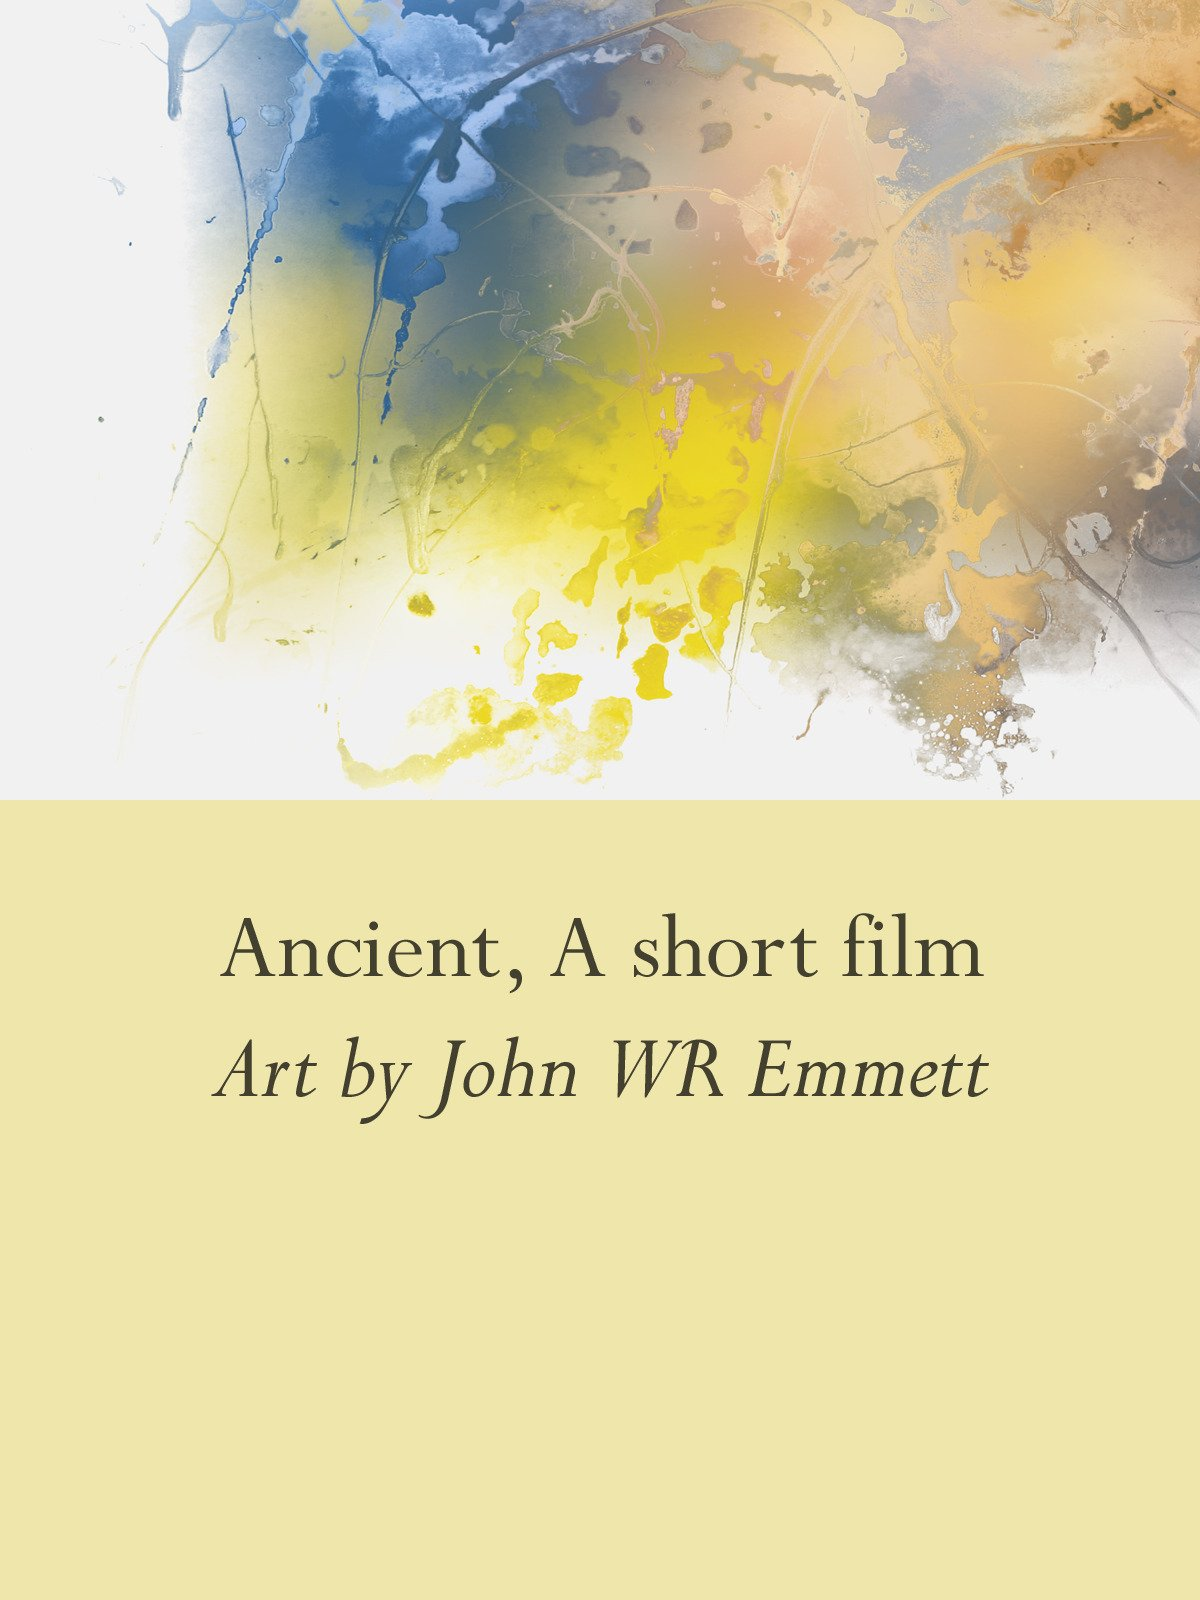 Ancient, A short film